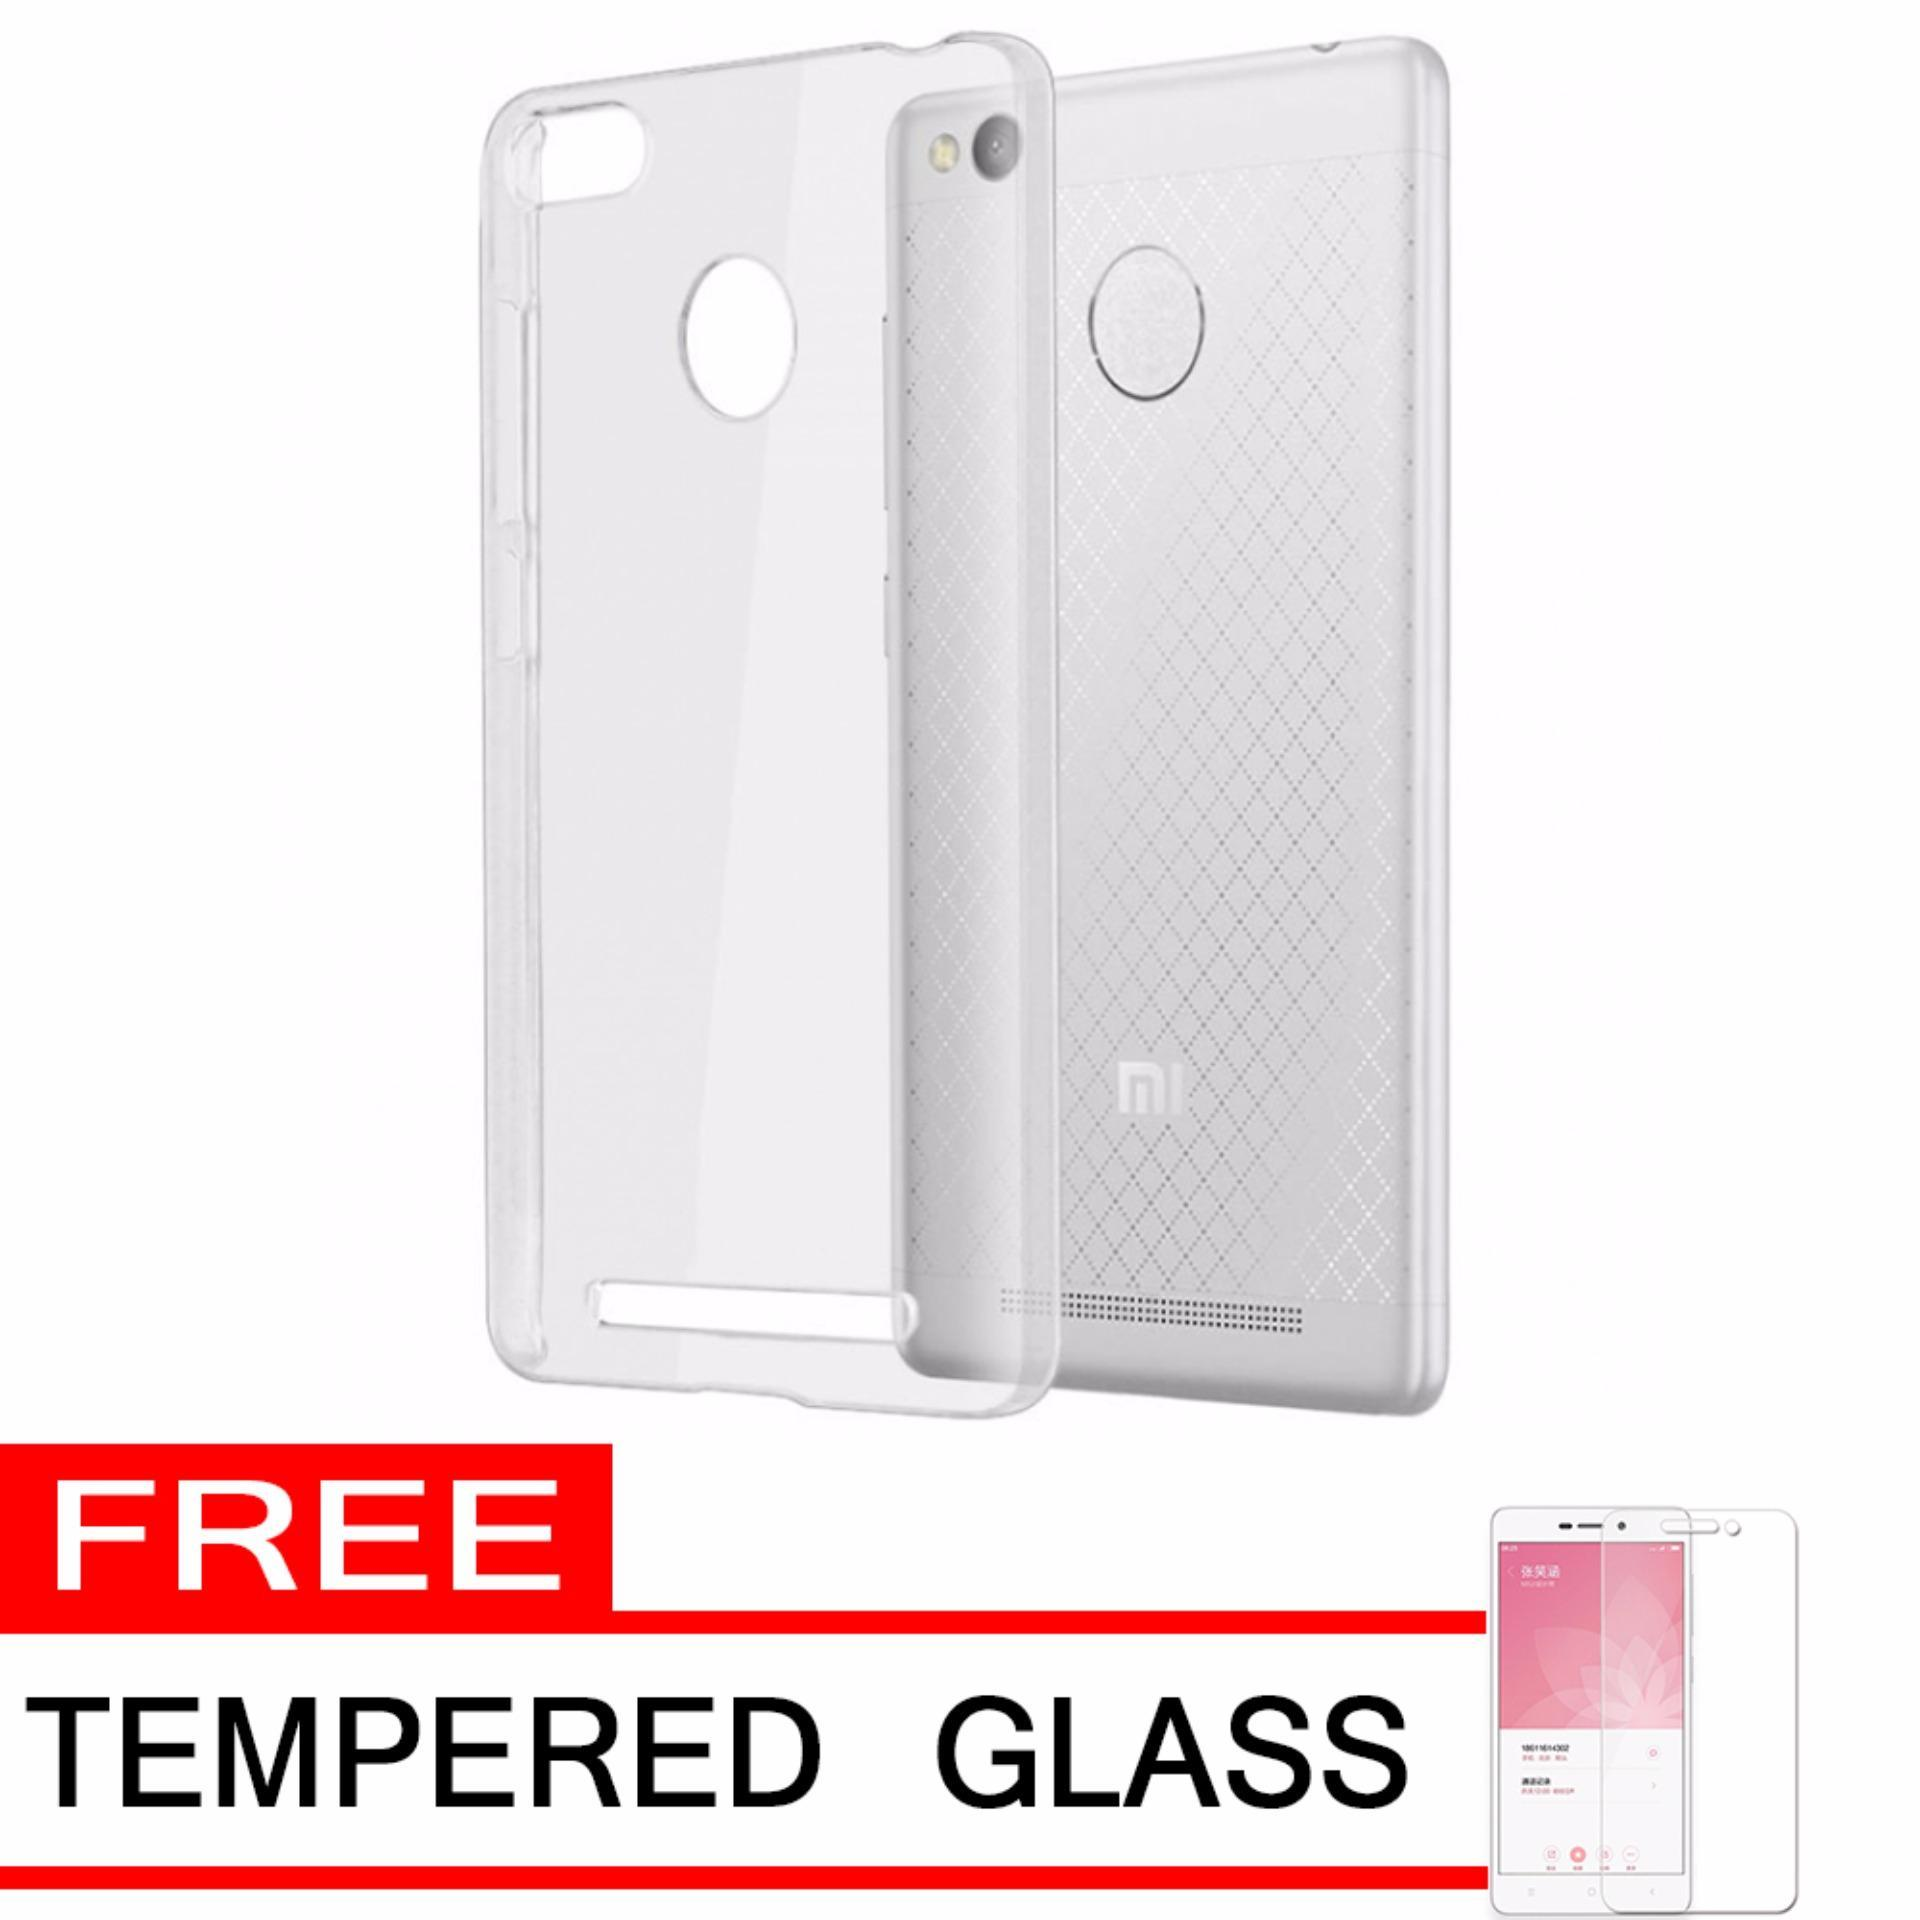 Flash Sale Gerai Softcase Silicon Ultrathin for Xiaomi Redmi 3s Pro/Prime -White Clear